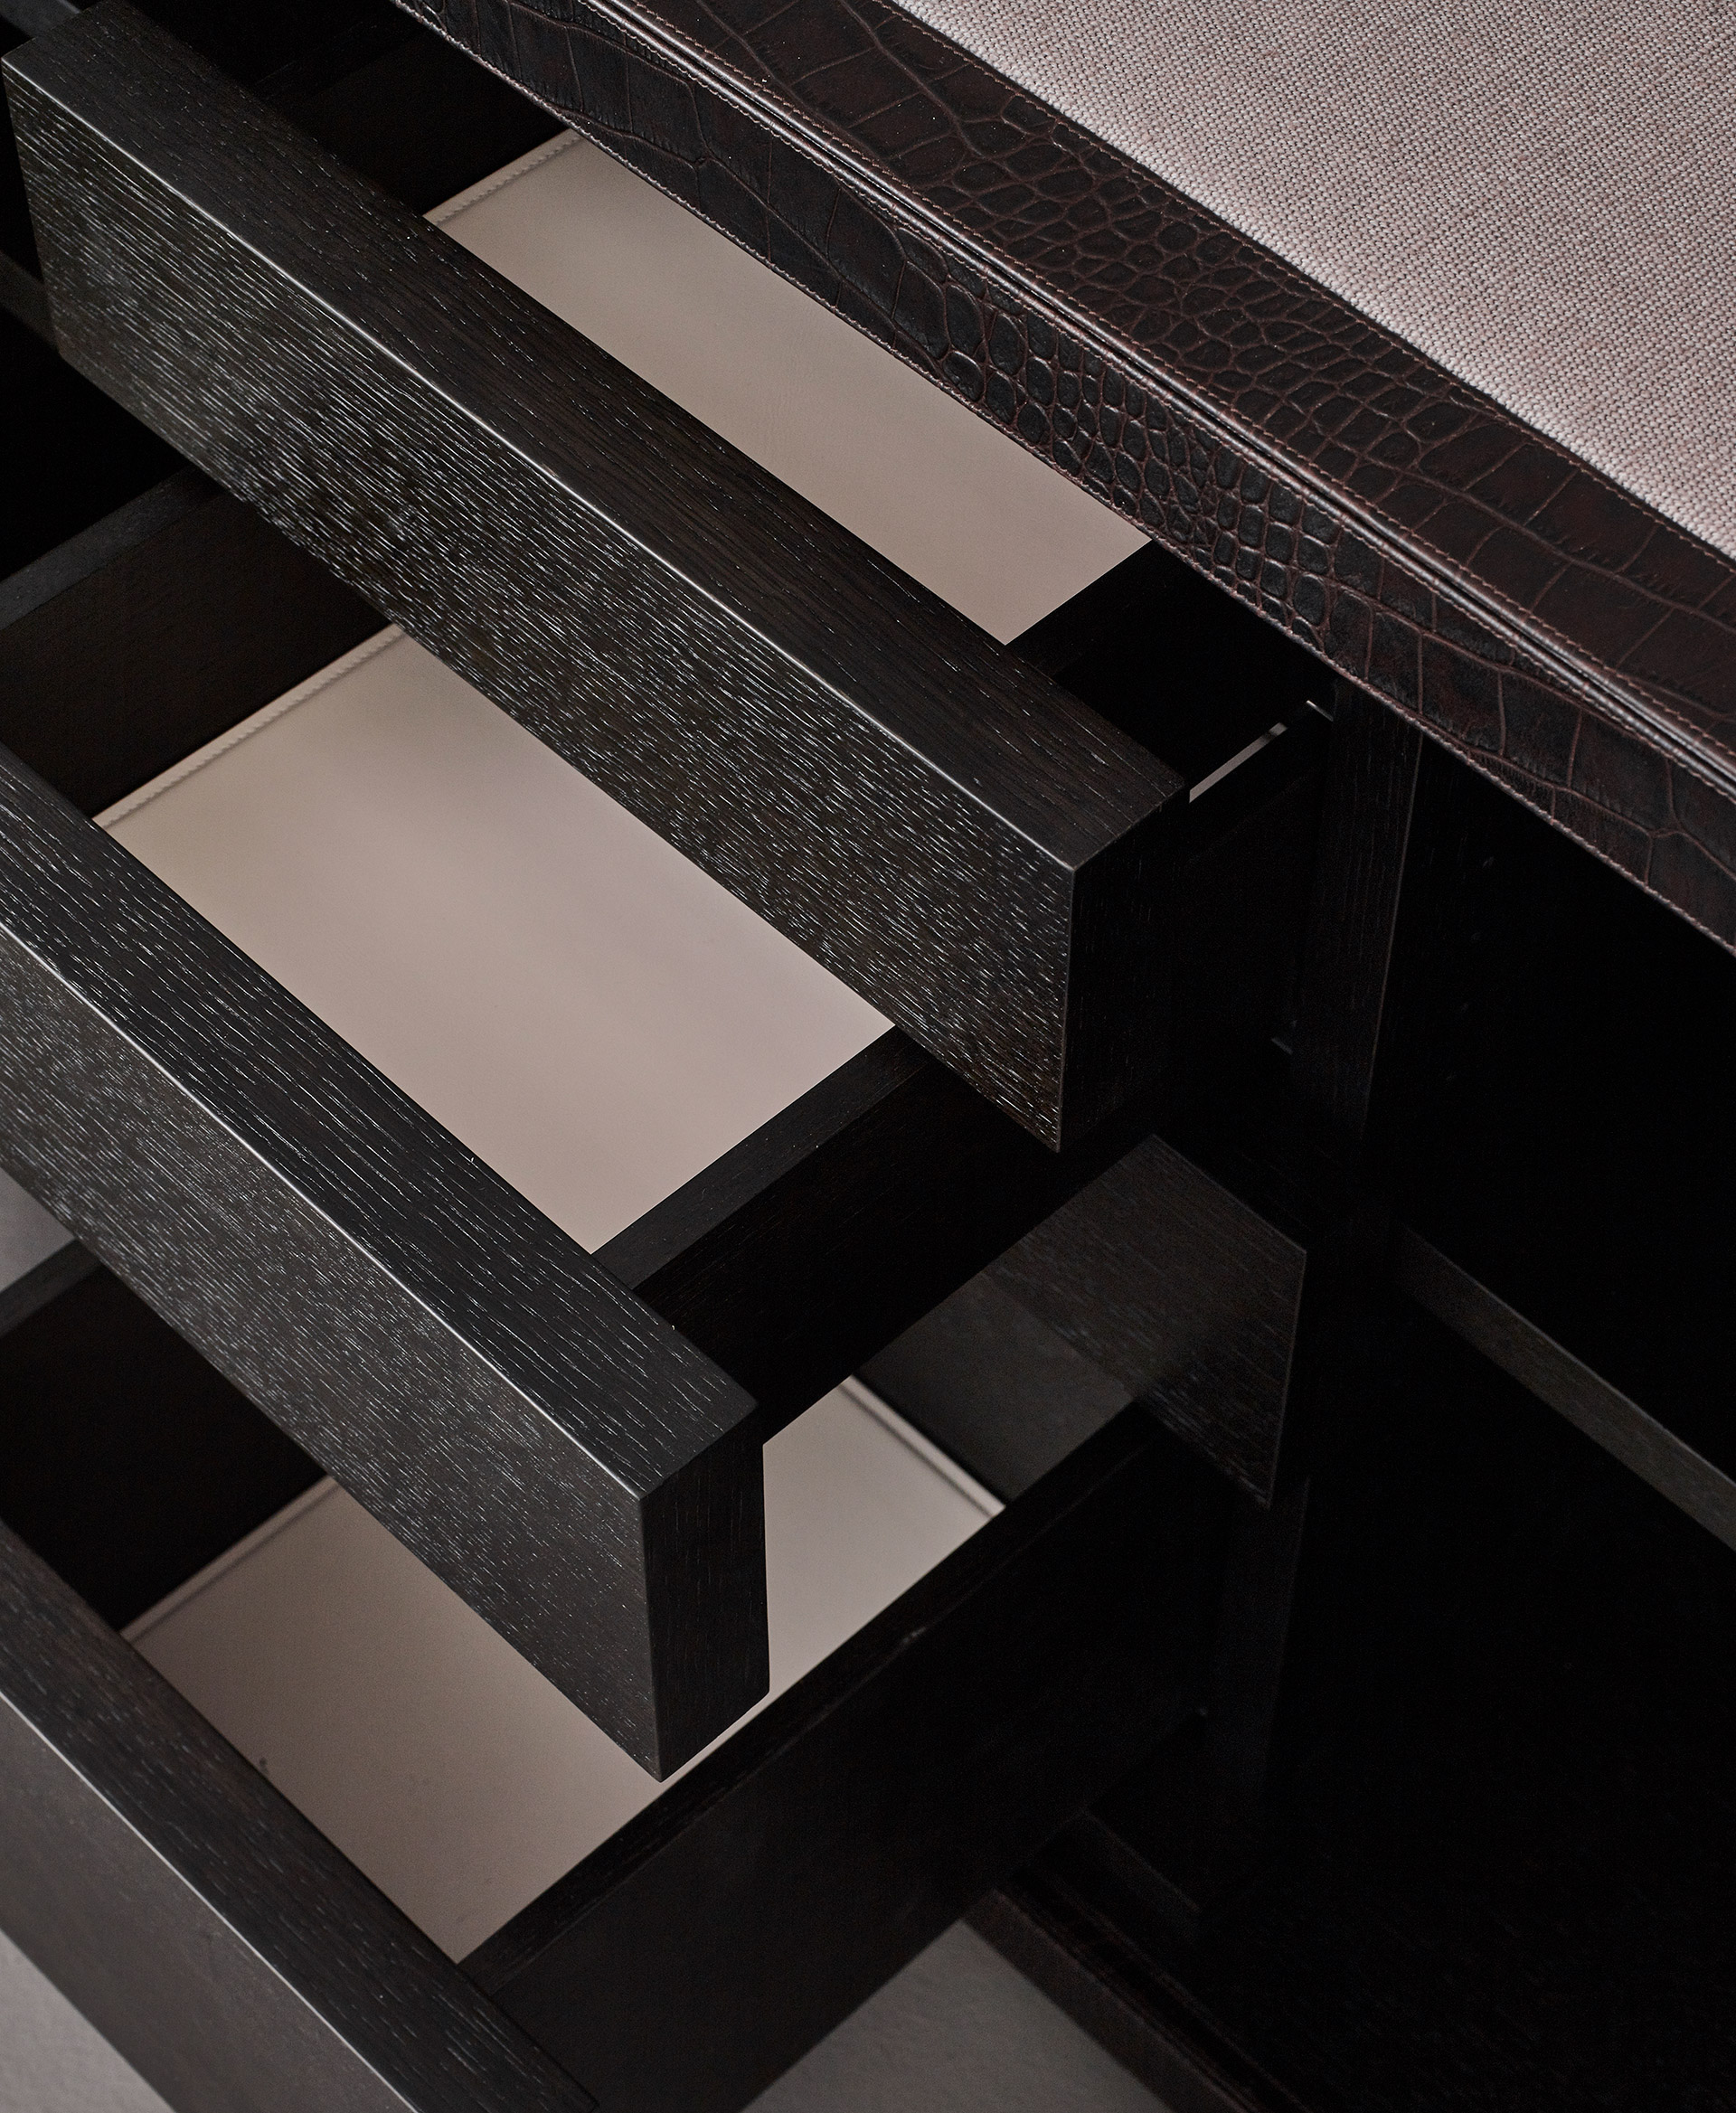 Drawers' detail of Future Voyager Atto II, a wooden cabinet covered in leather and fabric with handles and placemats in leather from Promemoria's catalogue | Promemoria